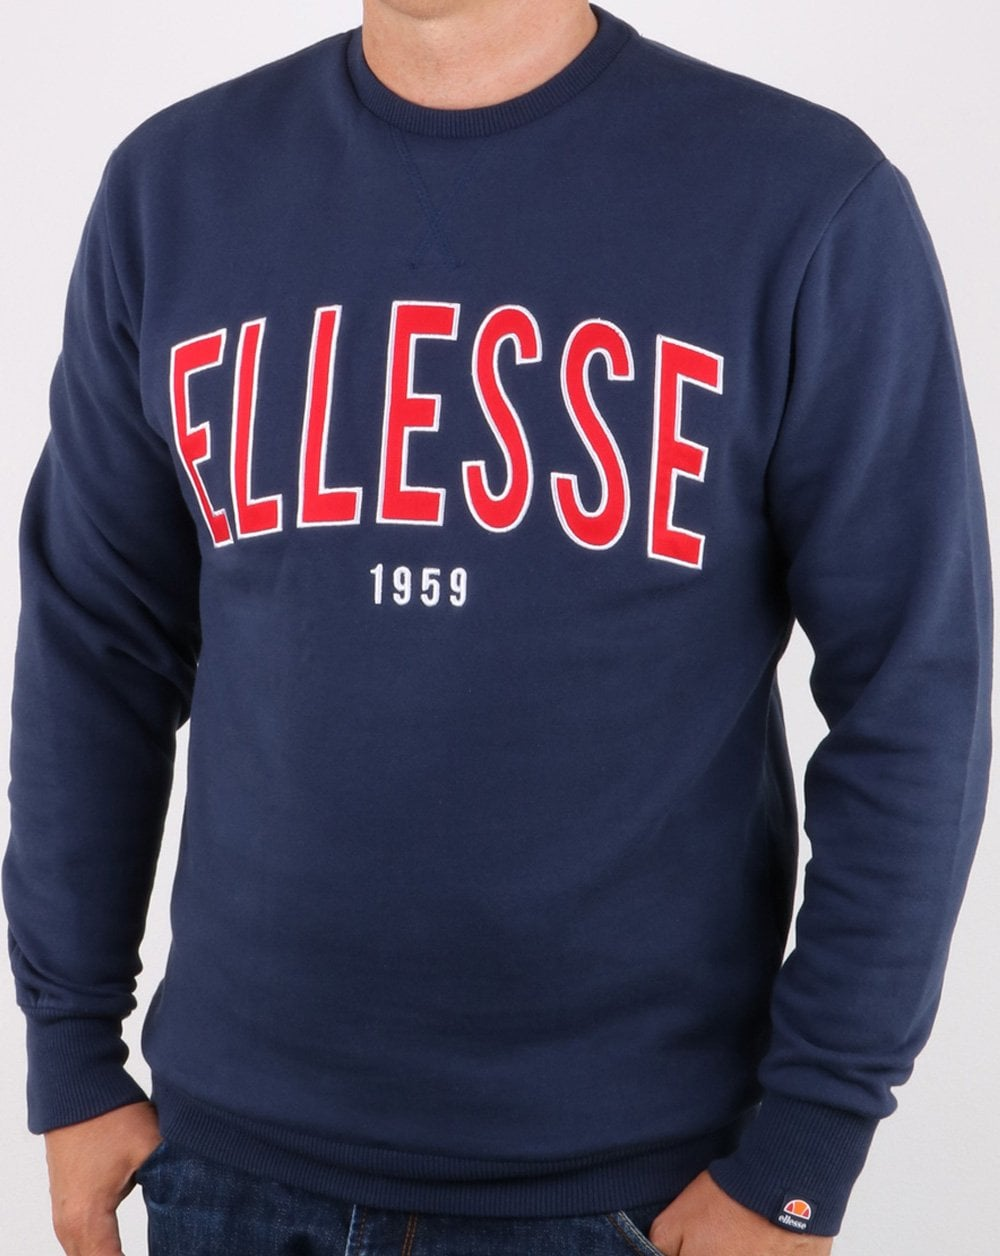 2dadf8f36 Ellesse 90's Outline Sweat Navy | 80s casual classics